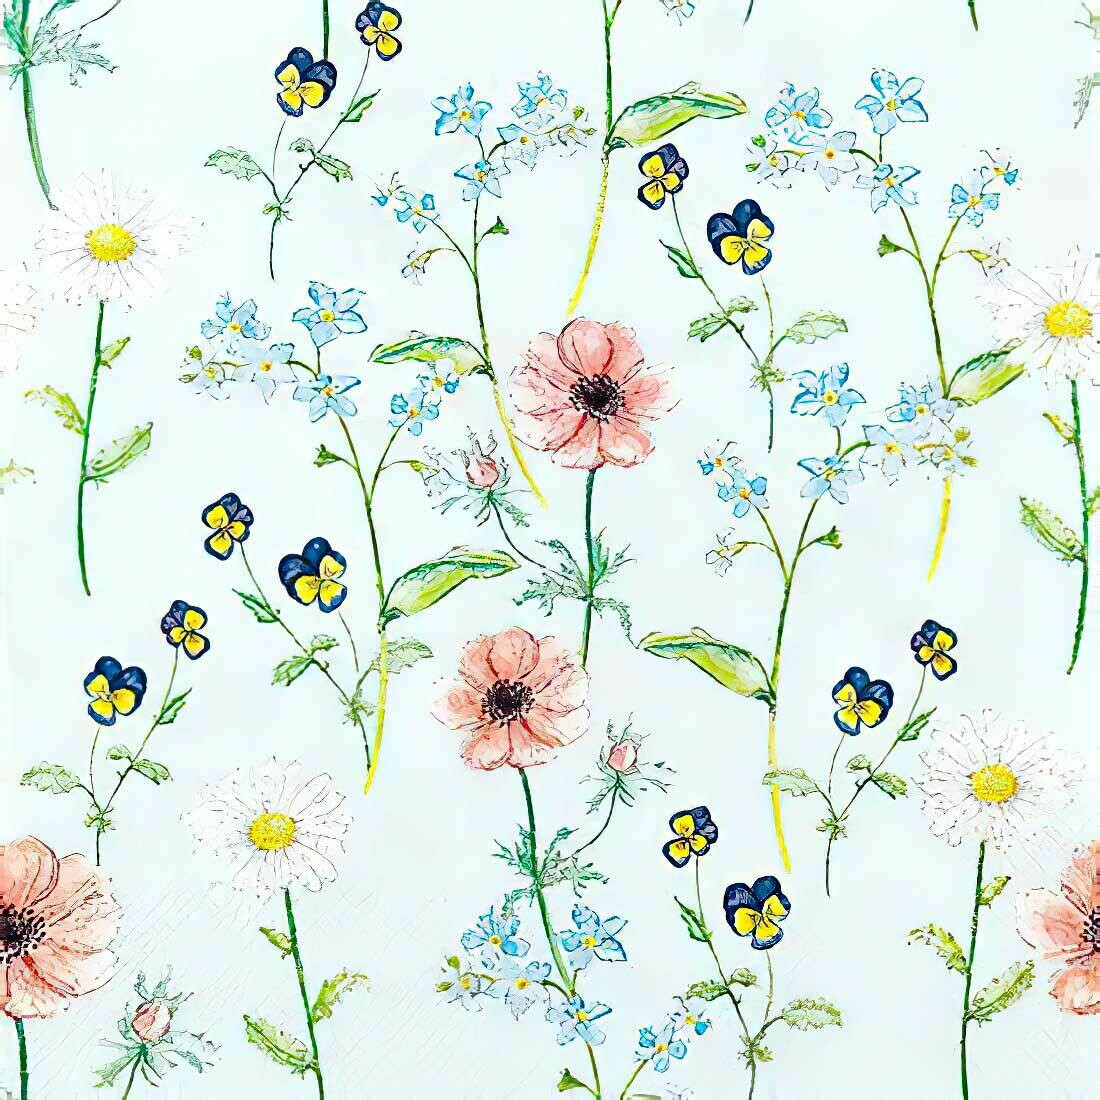 Decoupage Paper Napkins - Floral Little Garden Blue (1 Sheet)